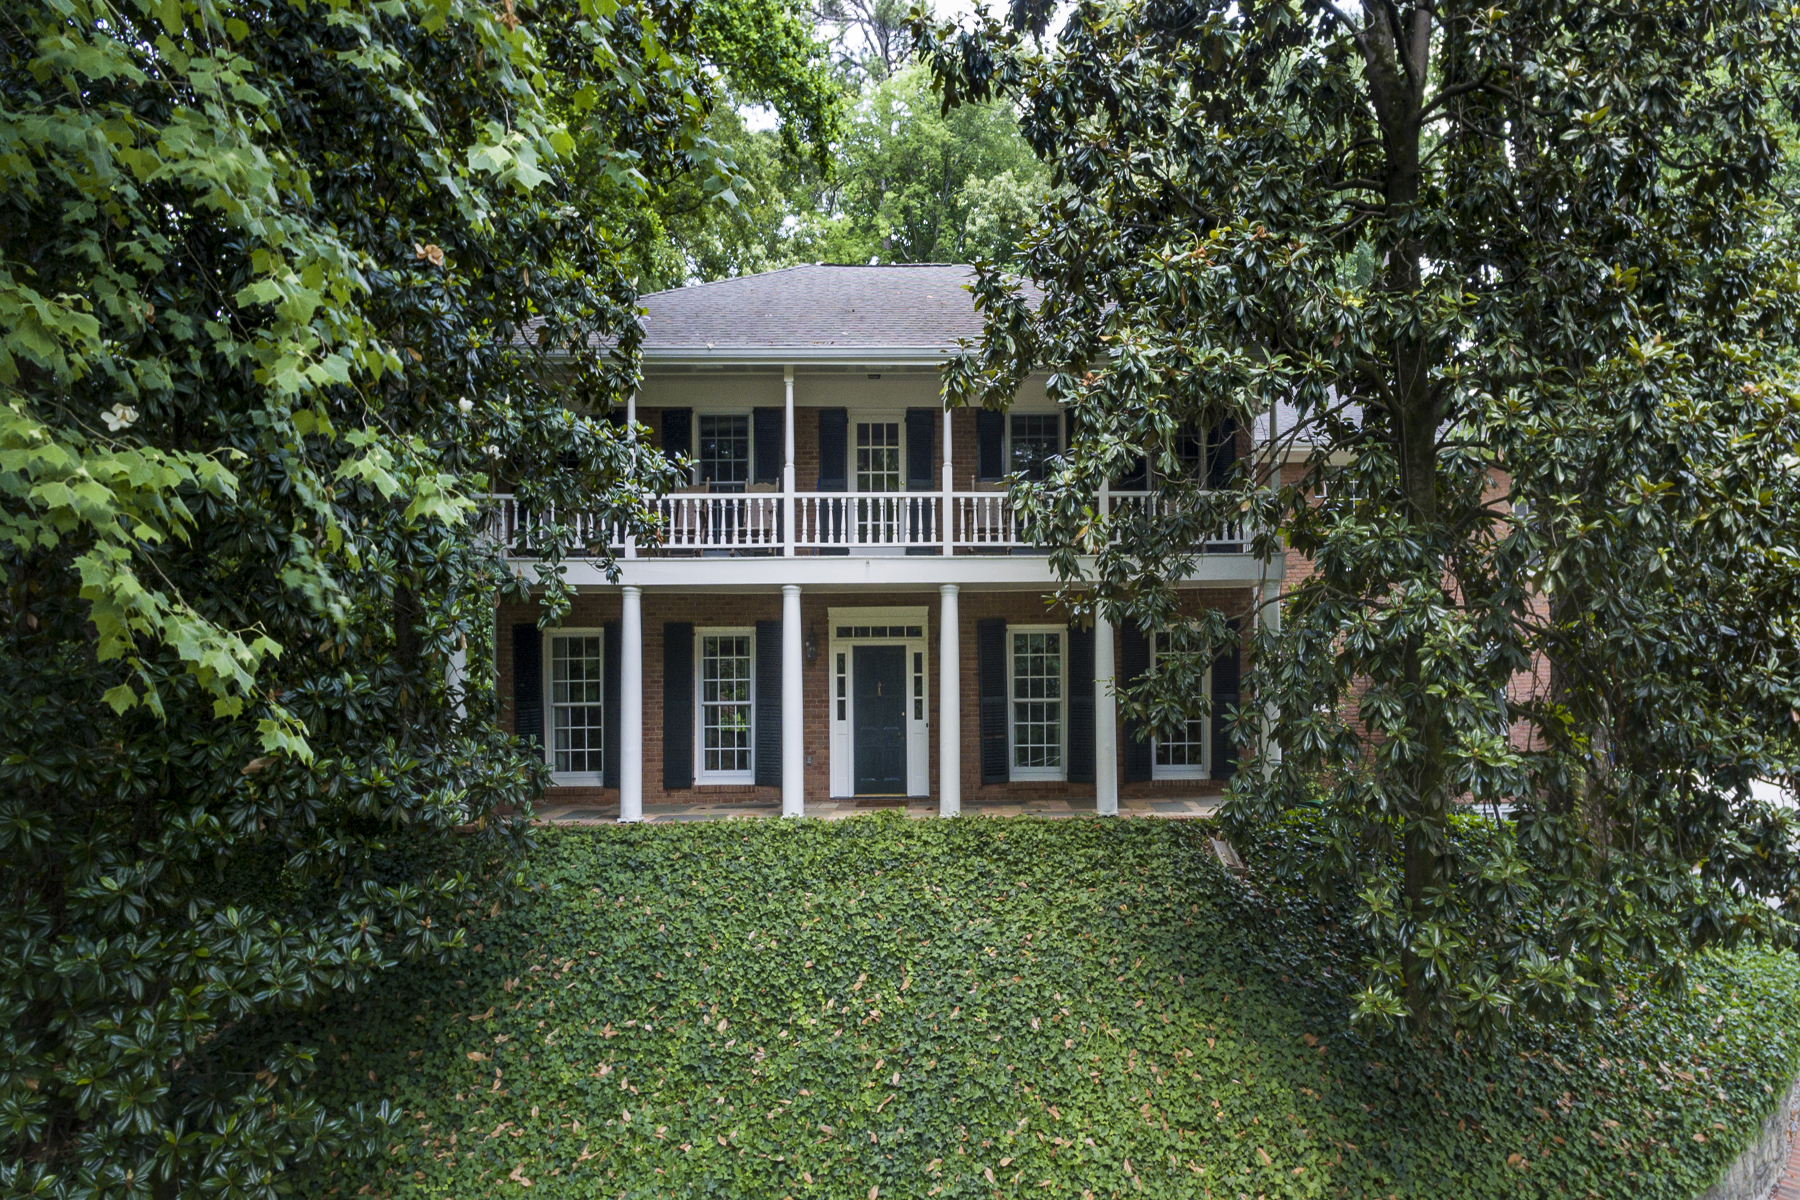 獨棟家庭住宅 為 出售 在 Charming Home On One Of Buckhead's Most Sought After Quiet Streets 3100 E Pine Valley Road NW Buckhead, Atlanta, 喬治亞州, 30305 美國